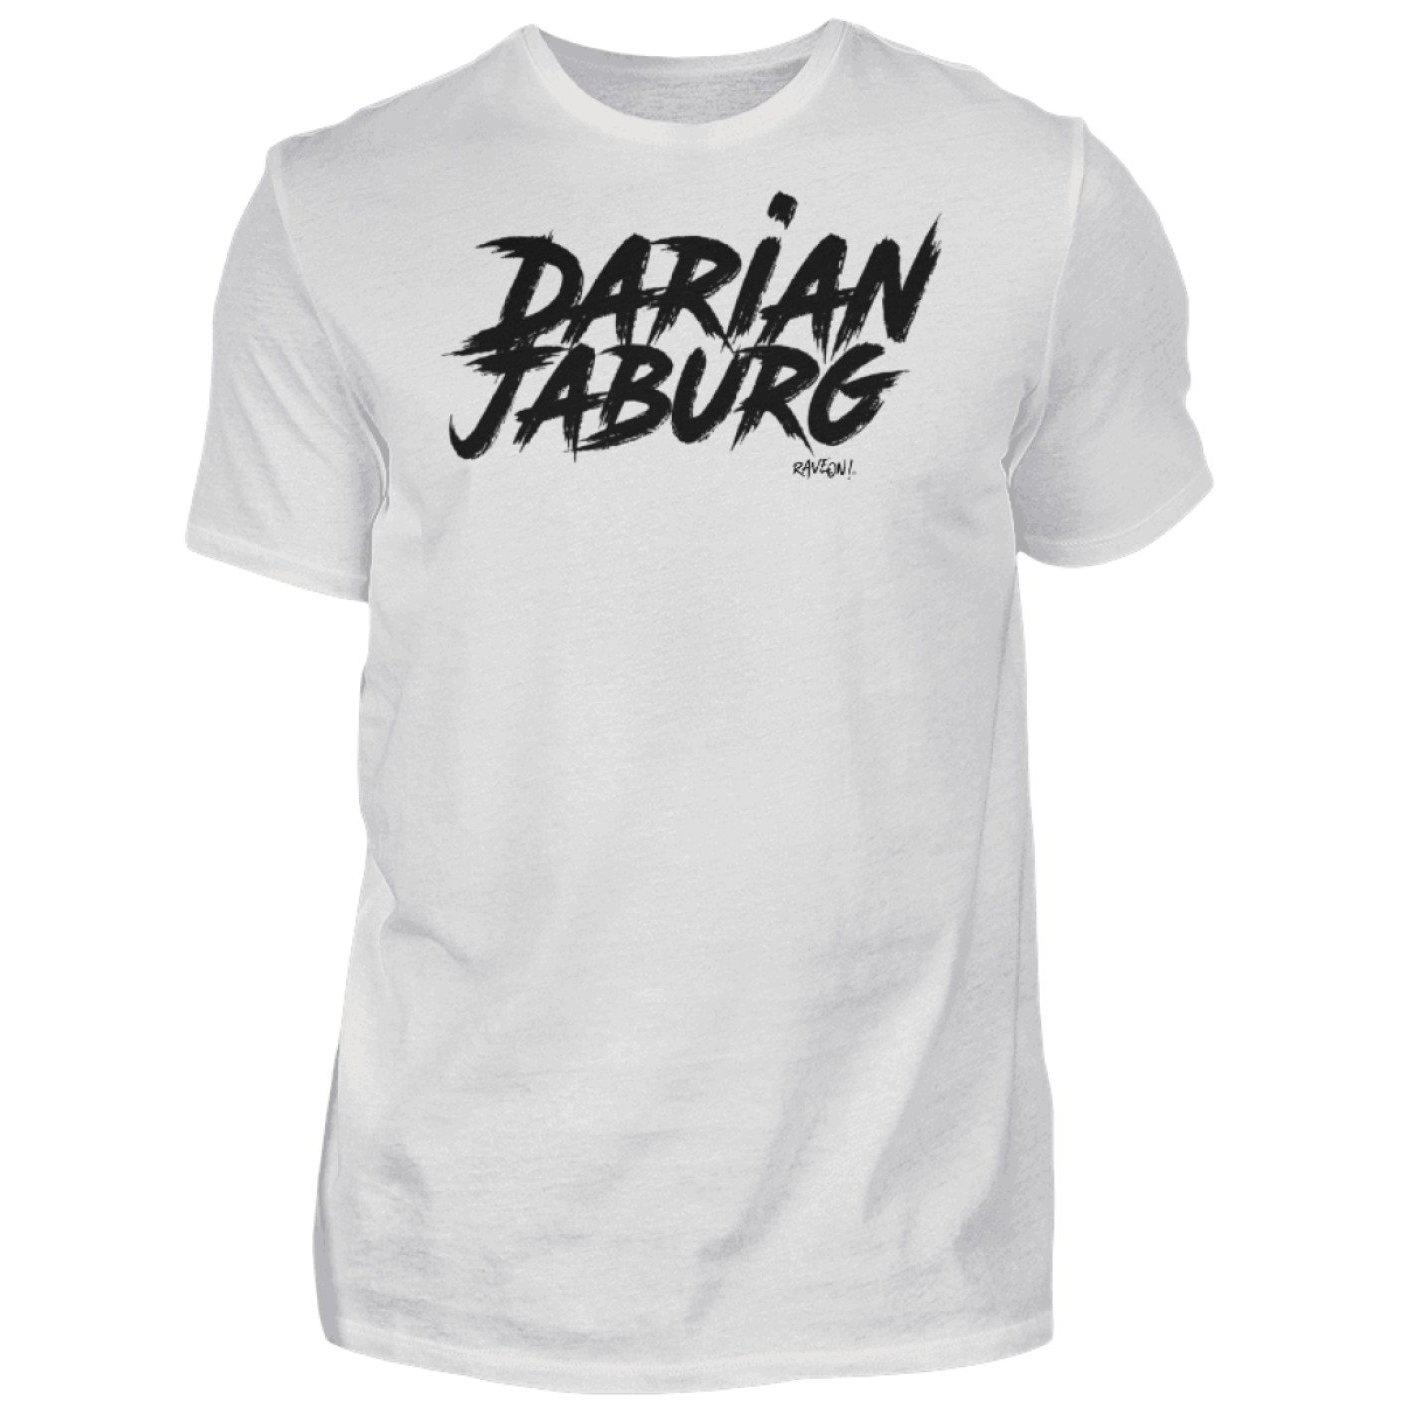 Darian Jaburg - BS Rec.White - Rave On!® - Herren Premiumshirt Herren Premium Shirt Ash (Heather) / S - Rave On!® der Club & Techno Szene Shop für Coole Junge Mode Streetwear Style & Fashion Outfits + Sexy Festival 420 Stuff